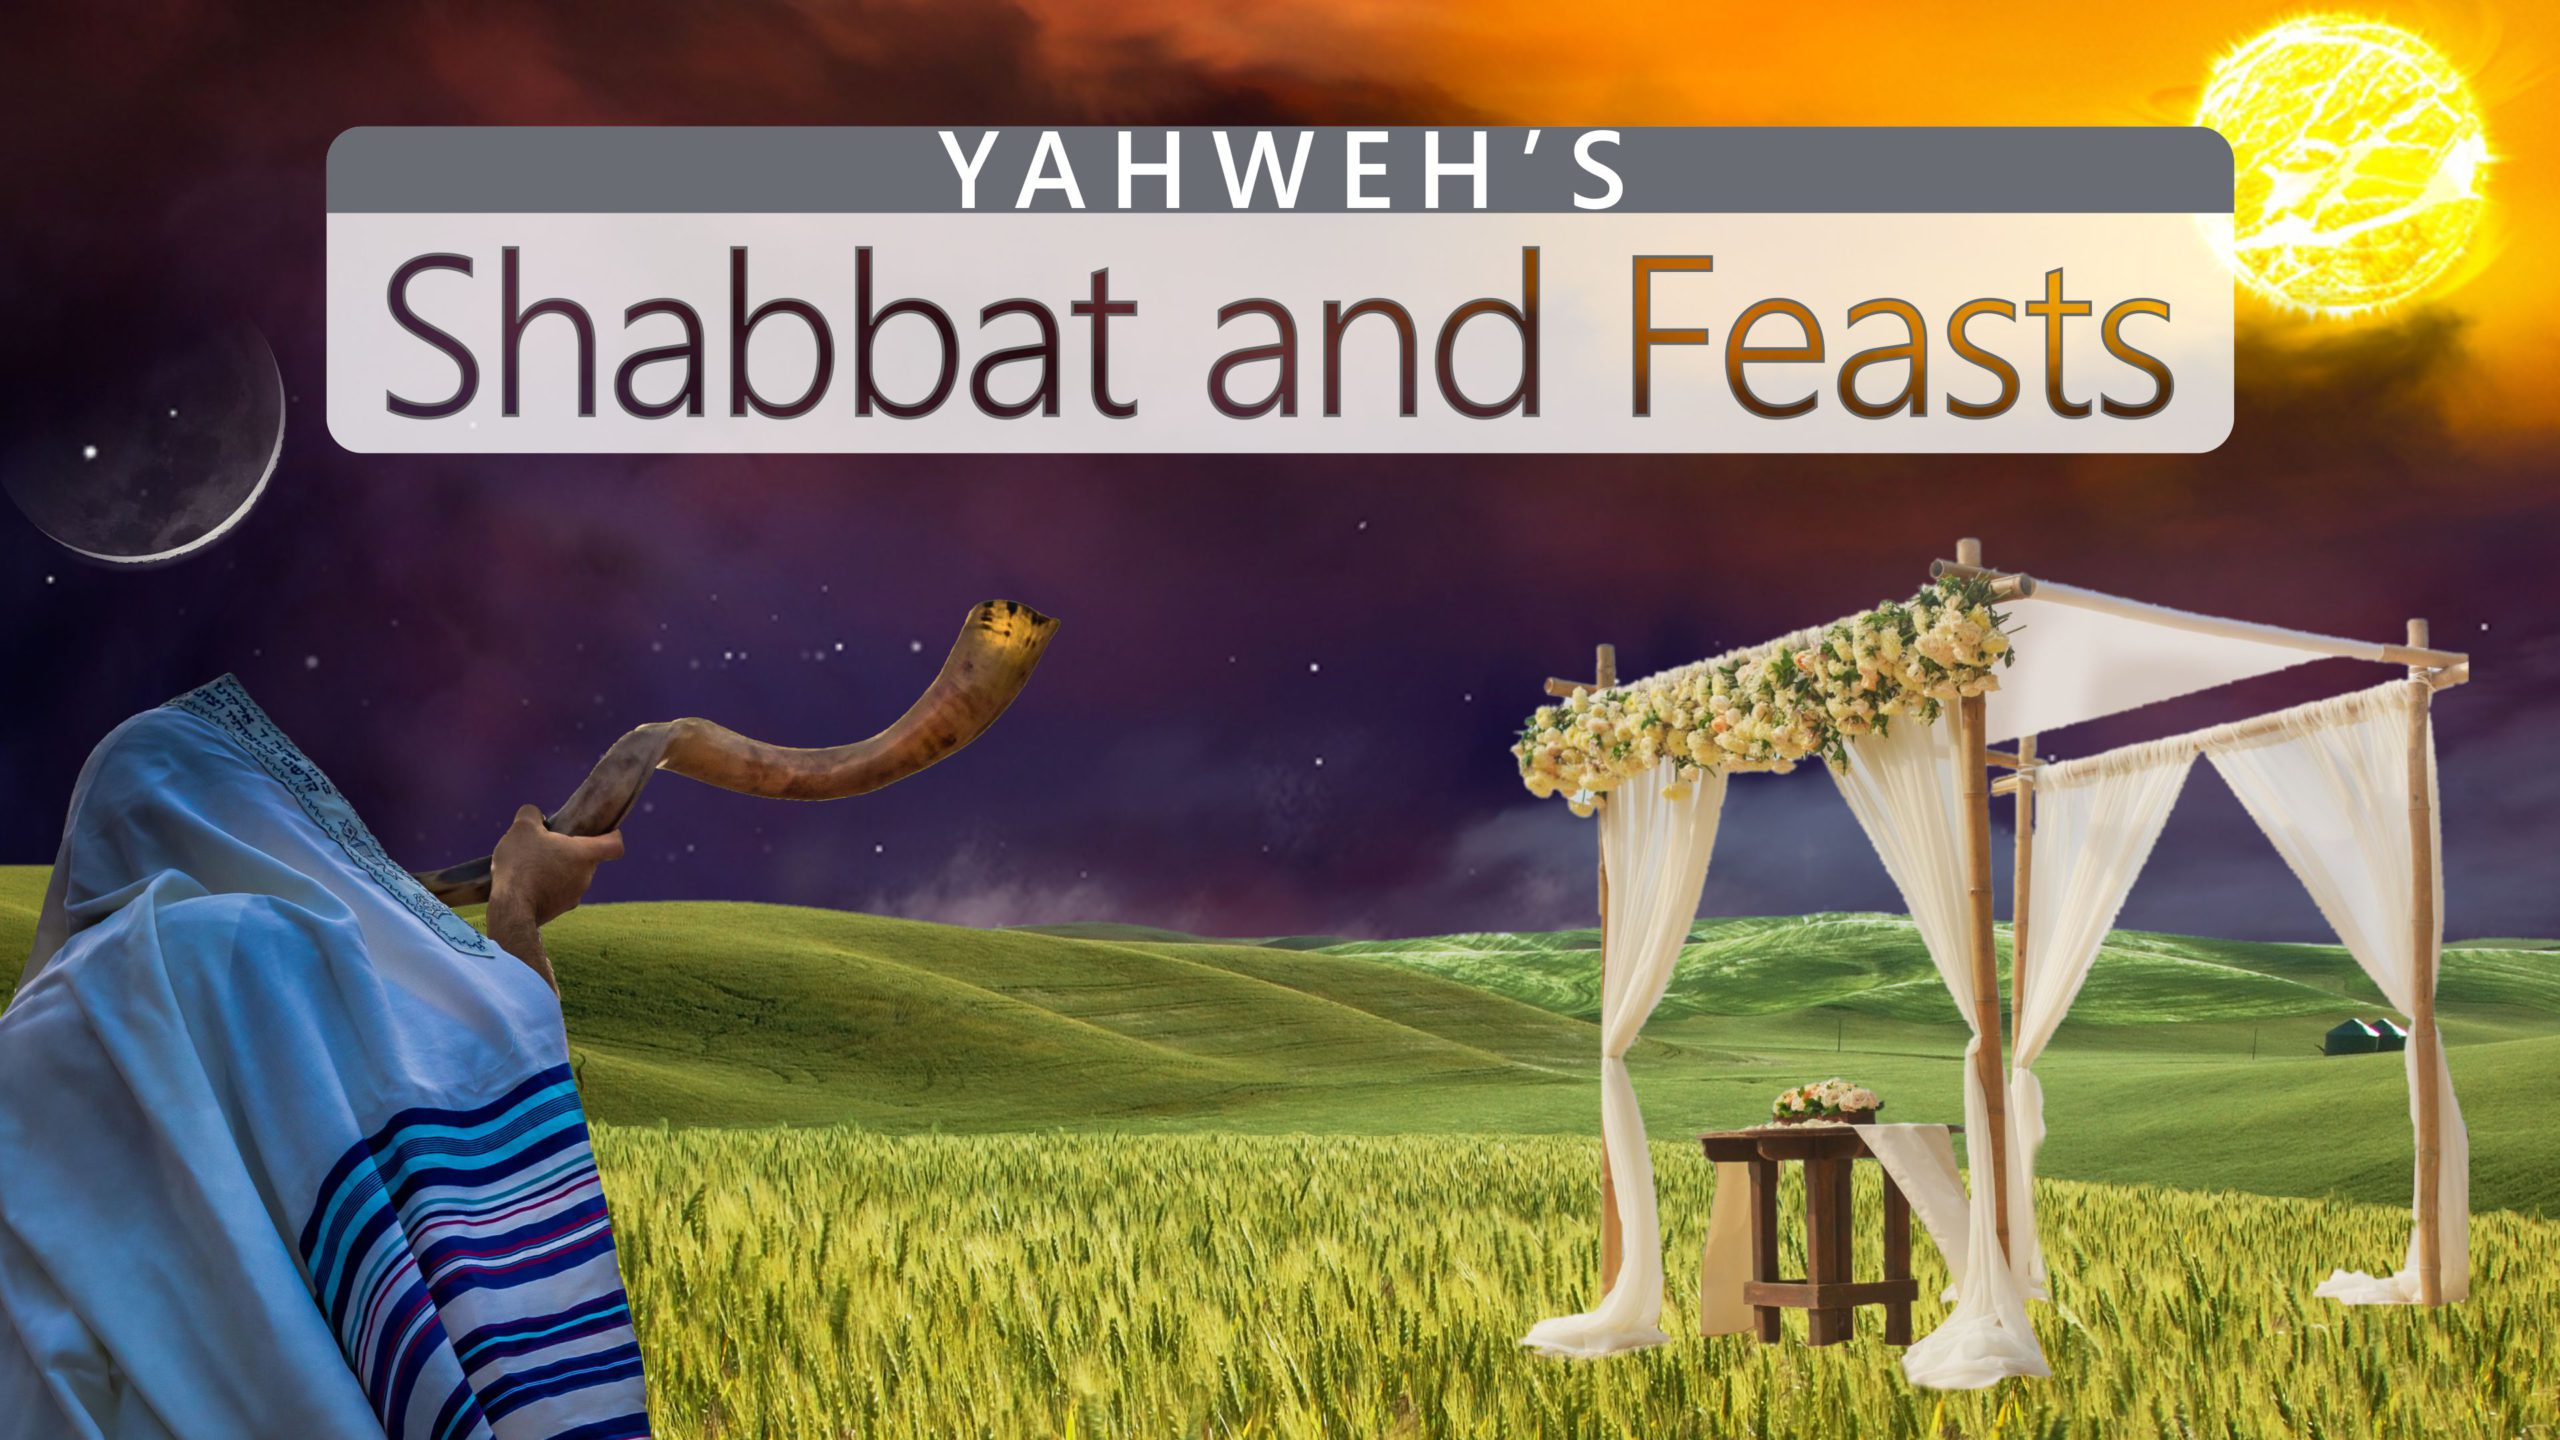 Yahweh's Shabbat and Feasts